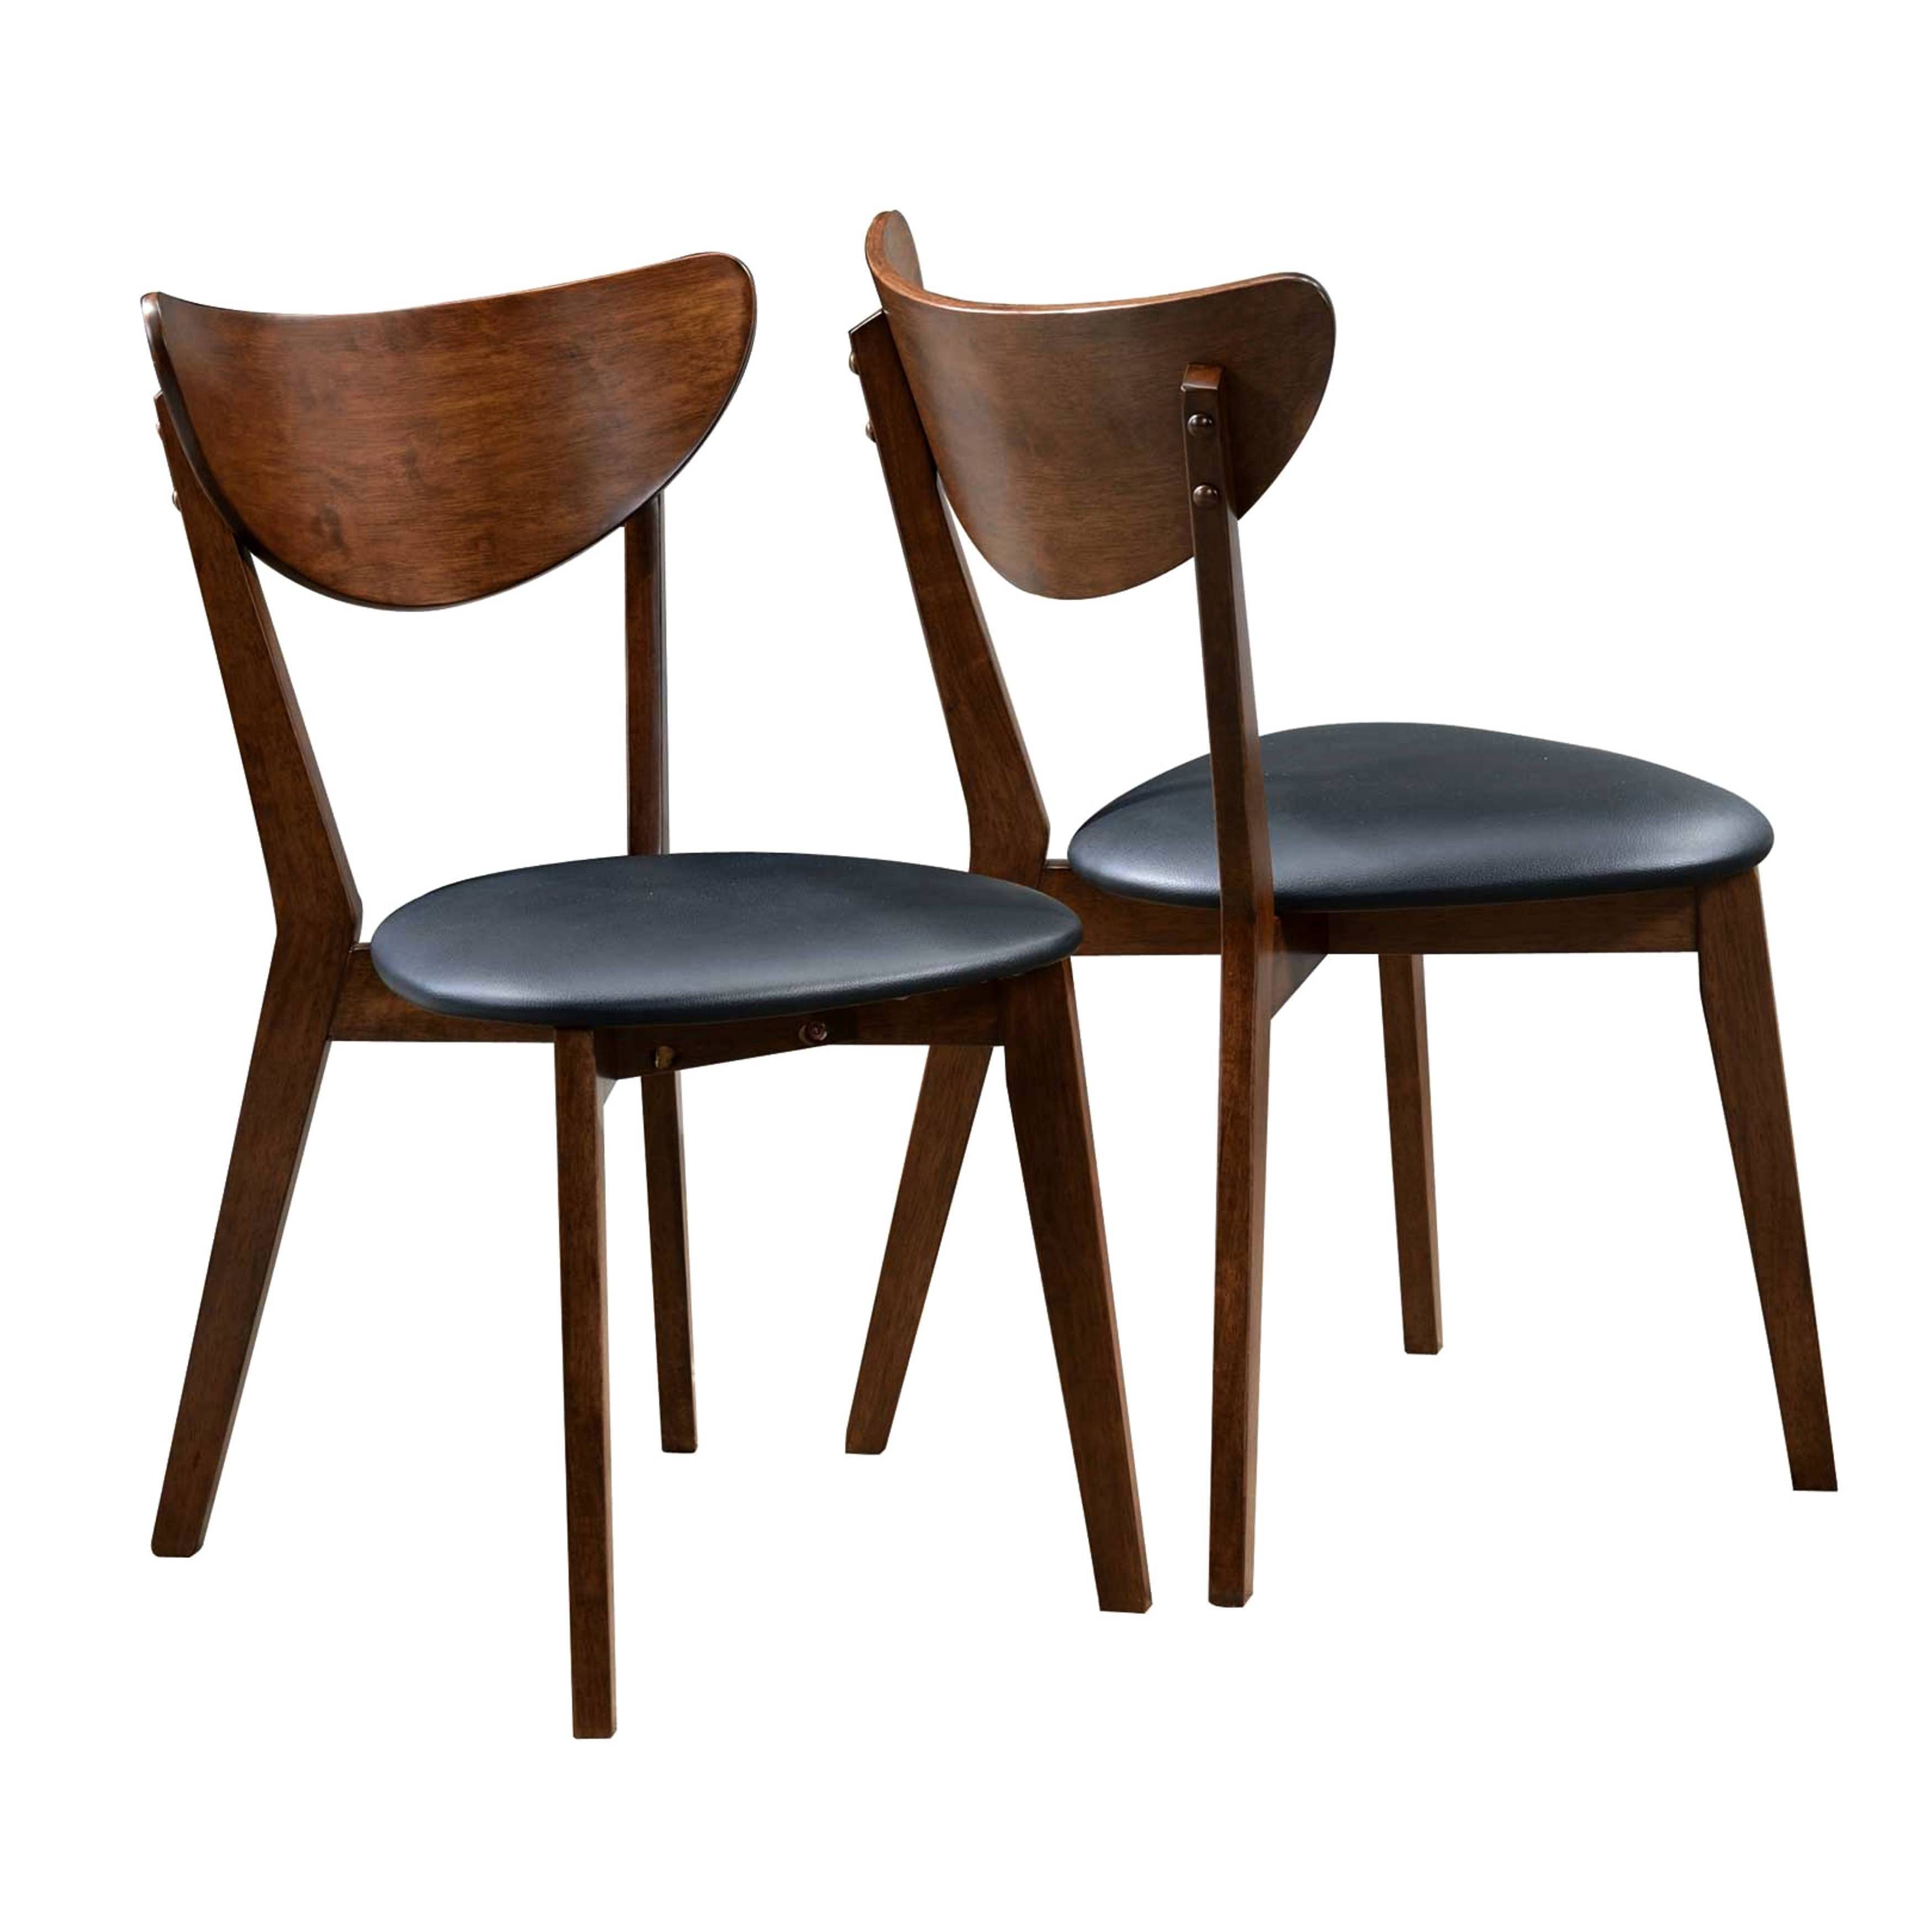 Surprising Peony Retro Dark Walnut And Black Seat Dining Chairs Set Of 2 Onthecornerstone Fun Painted Chair Ideas Images Onthecornerstoneorg